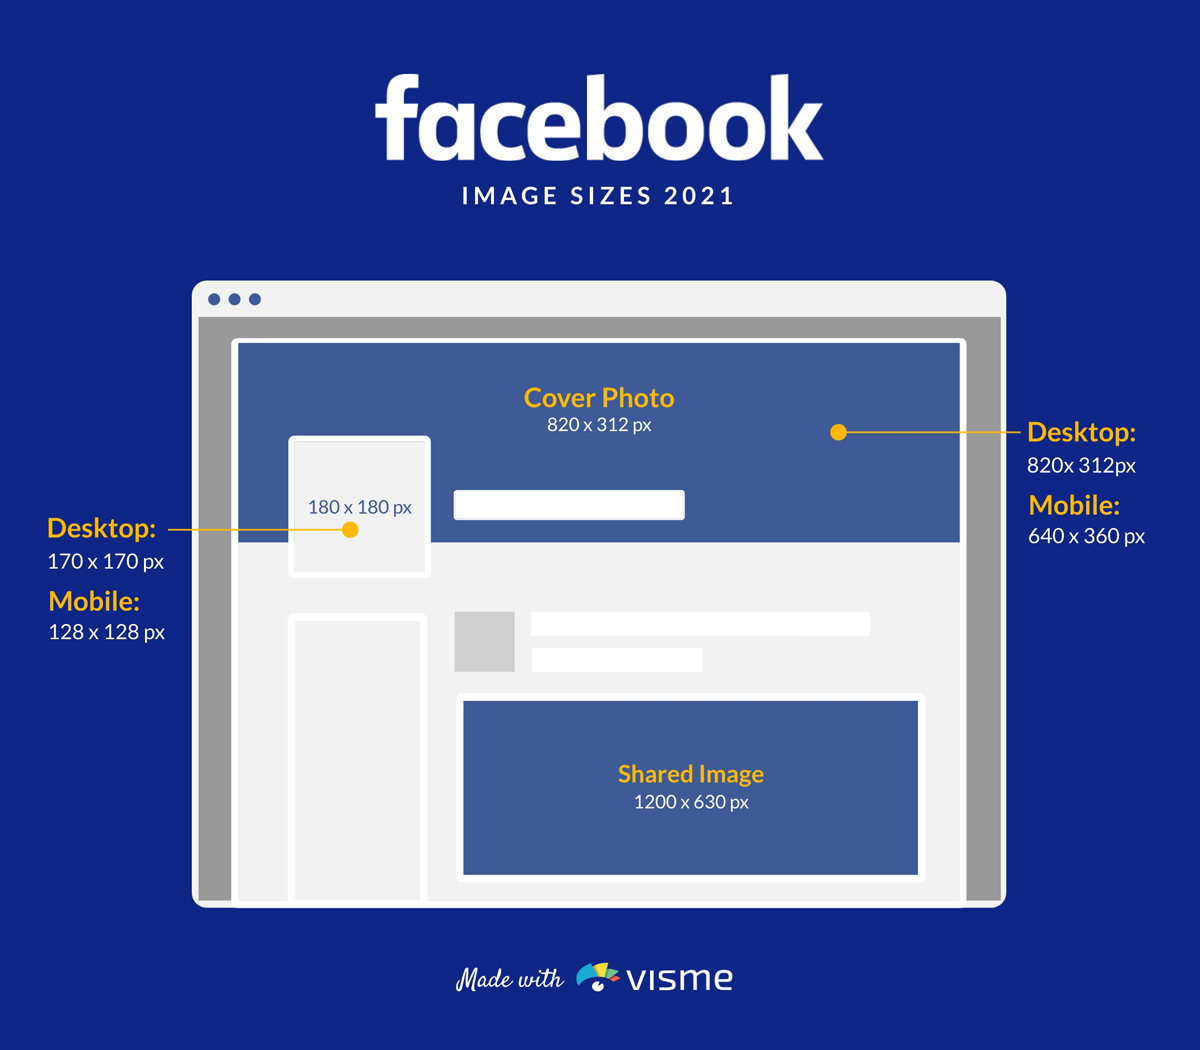 A mockup of all of Facebook's image sizes.